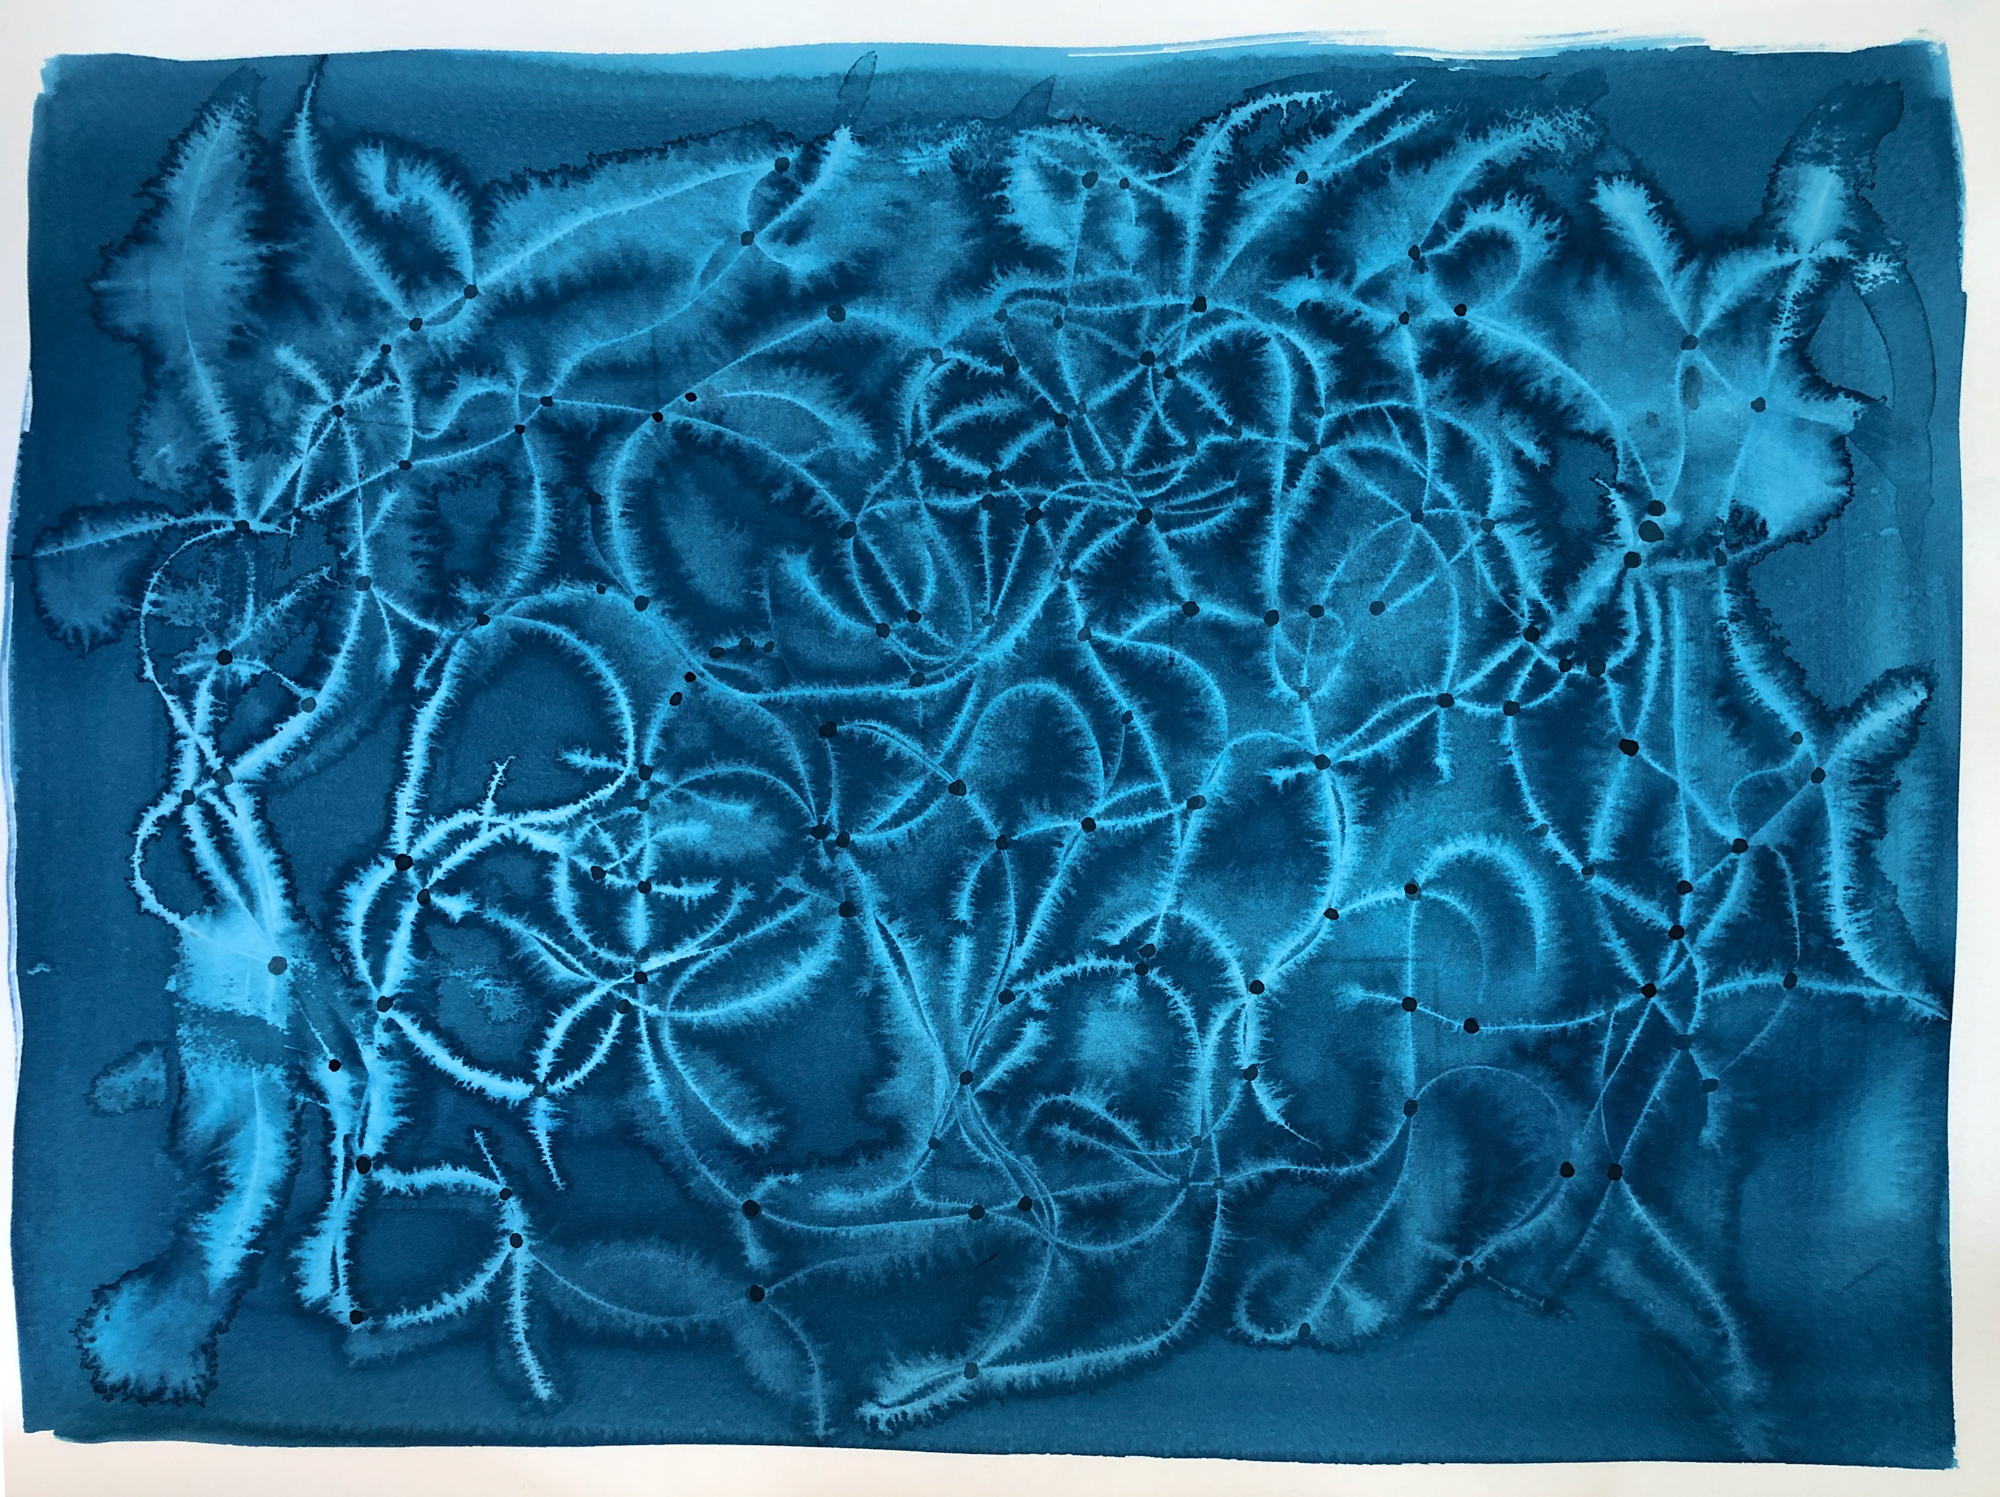 Blue Topography, 2015, mixed media on paper, 22 x 30 in, $5,000